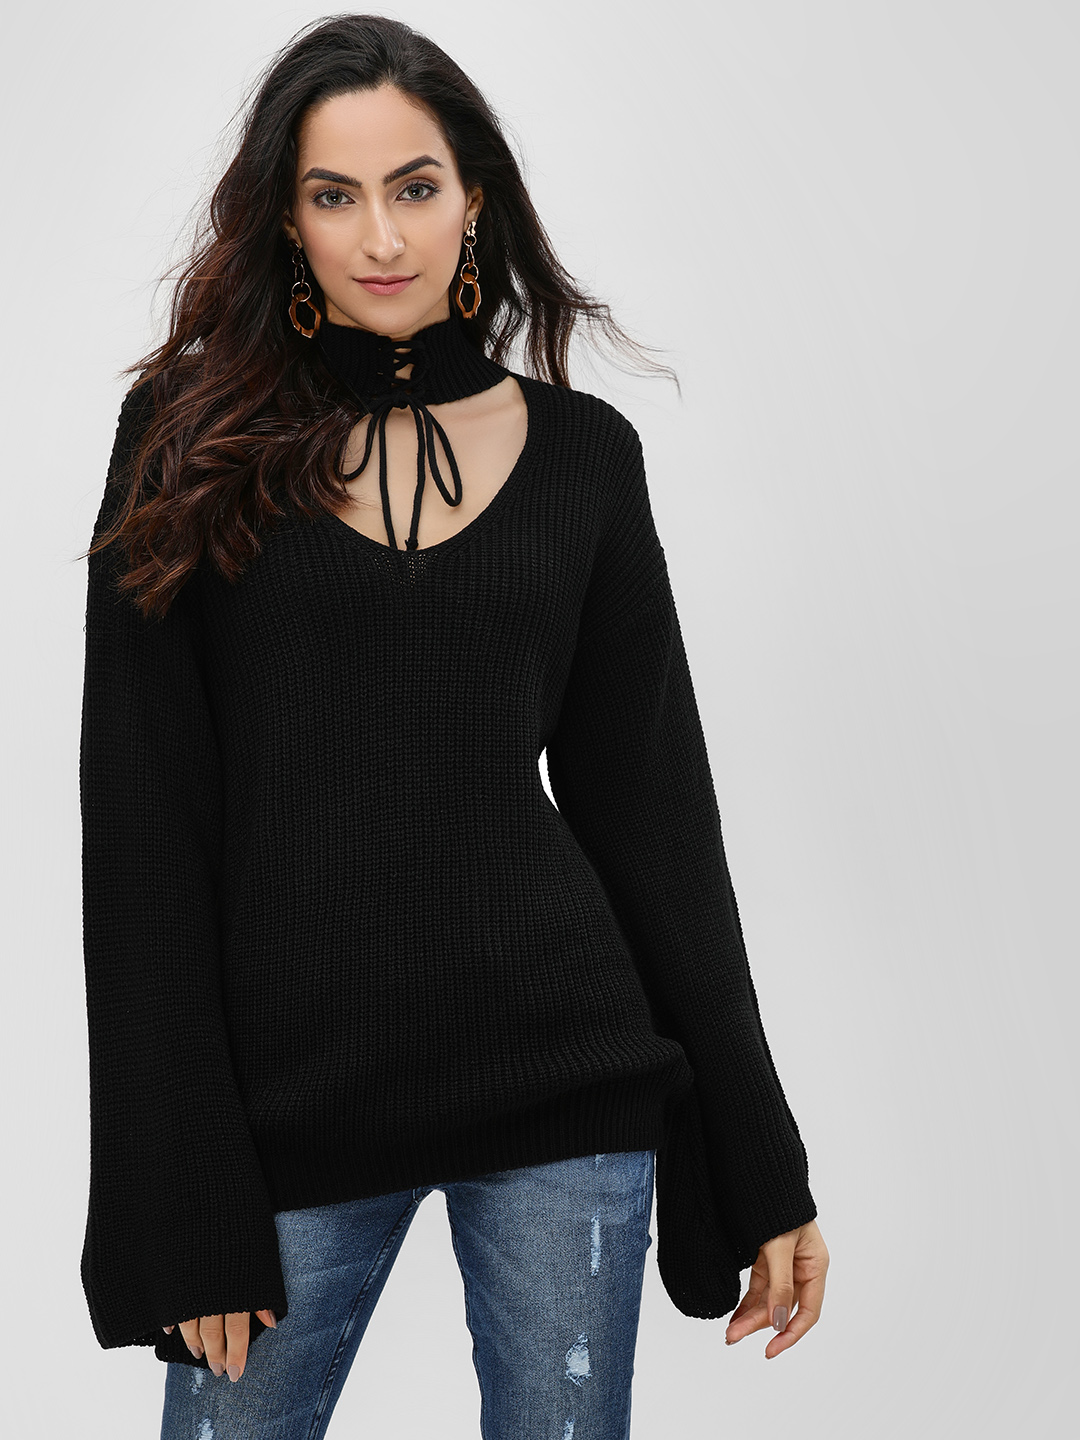 Lasula Black Choker Neck Flare Sleeve Jumper 1